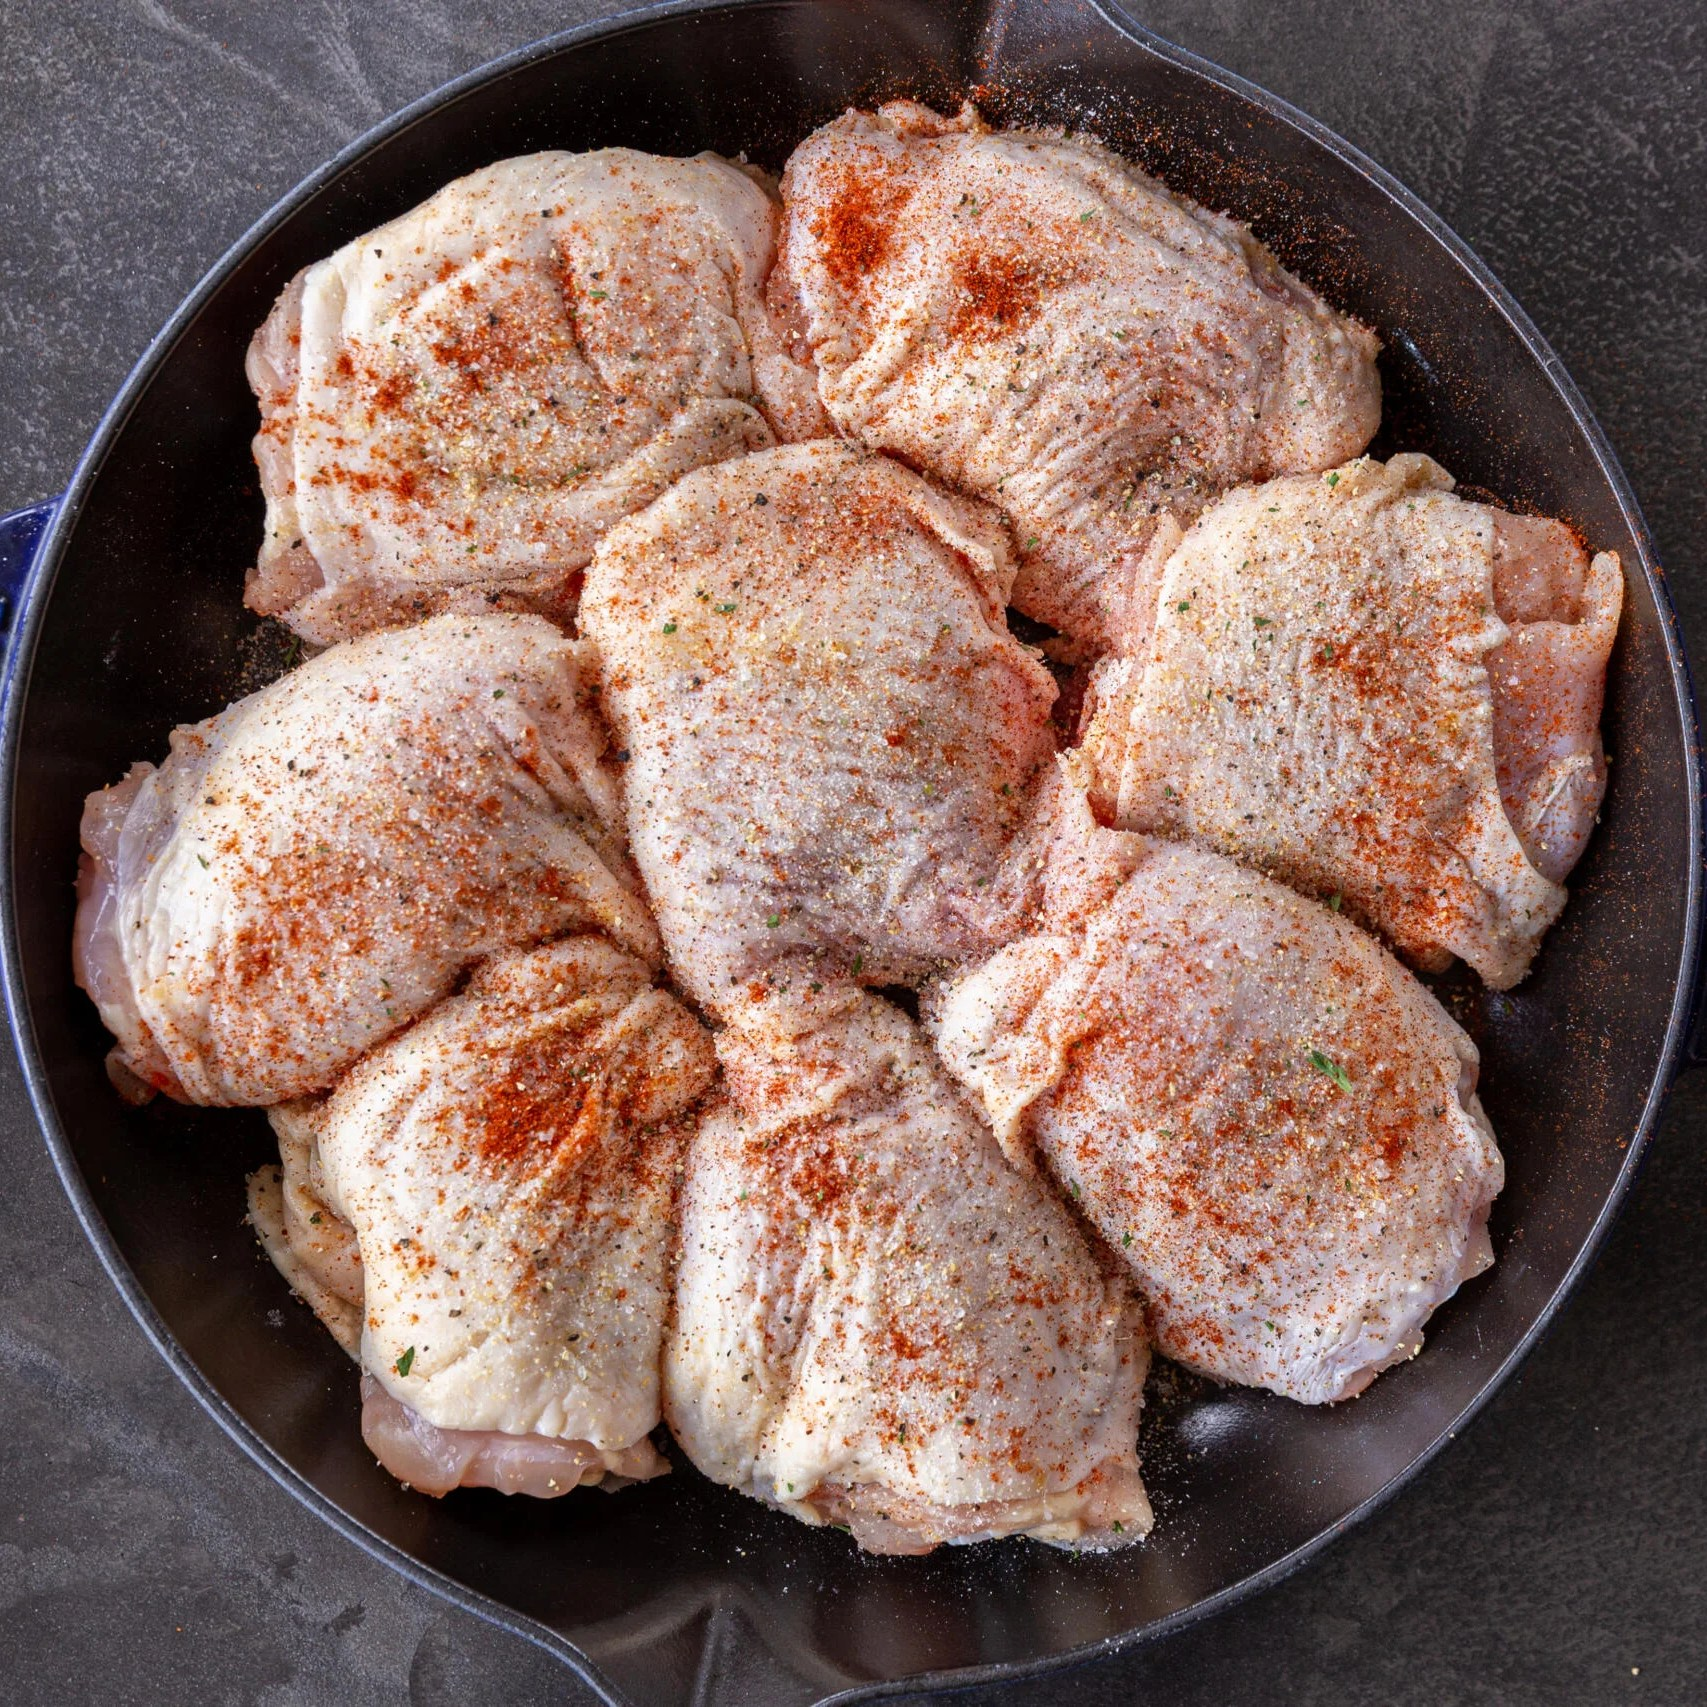 Seasoned chicken thighs in a pan